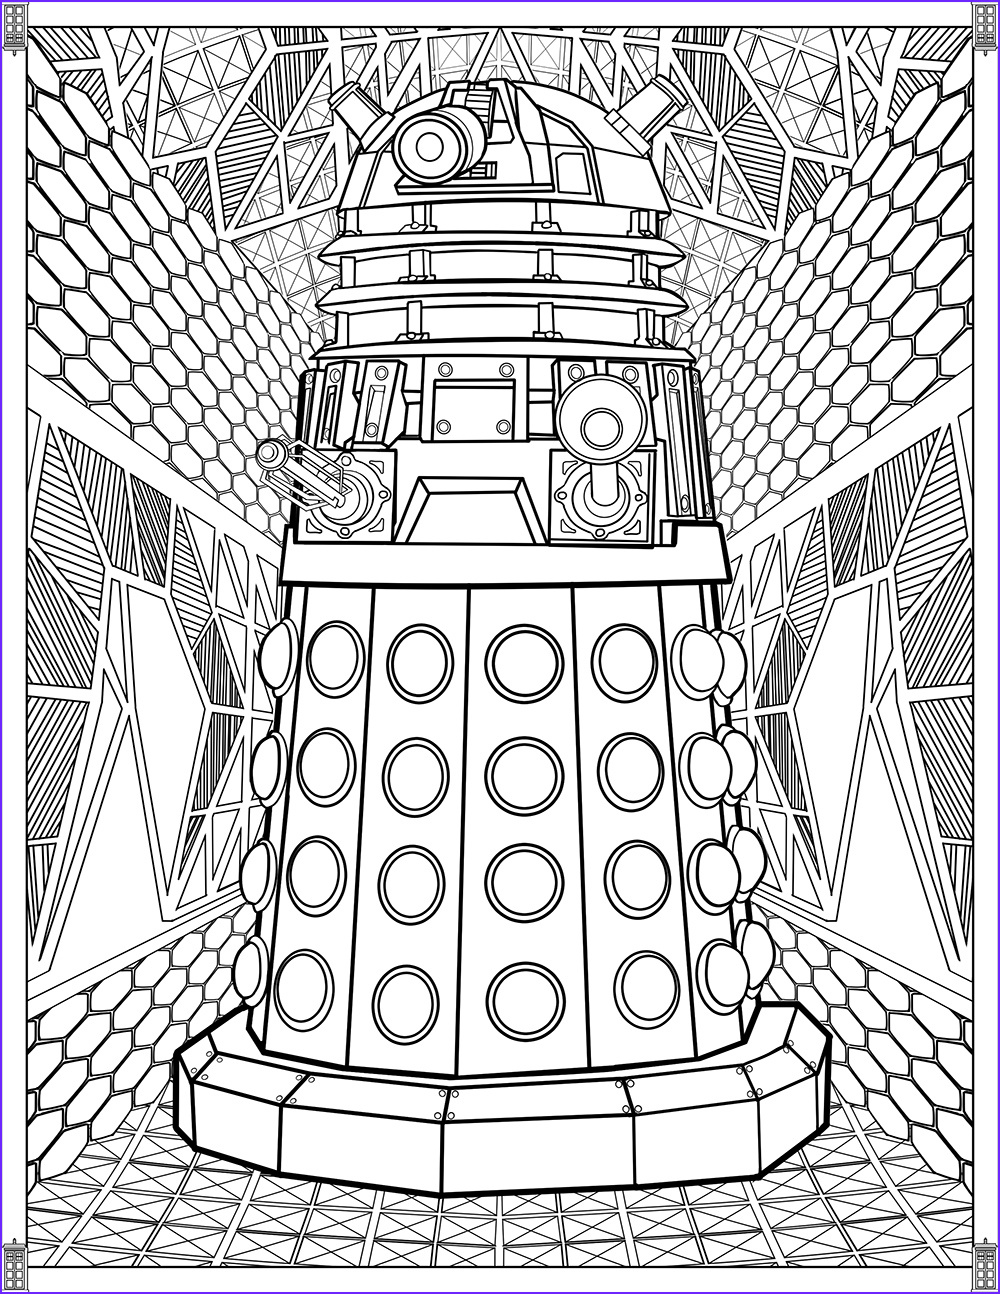 Color Coloring Page Unique Collection Doctor who Wibbly Wobbly Timey Wimey Coloring Pages